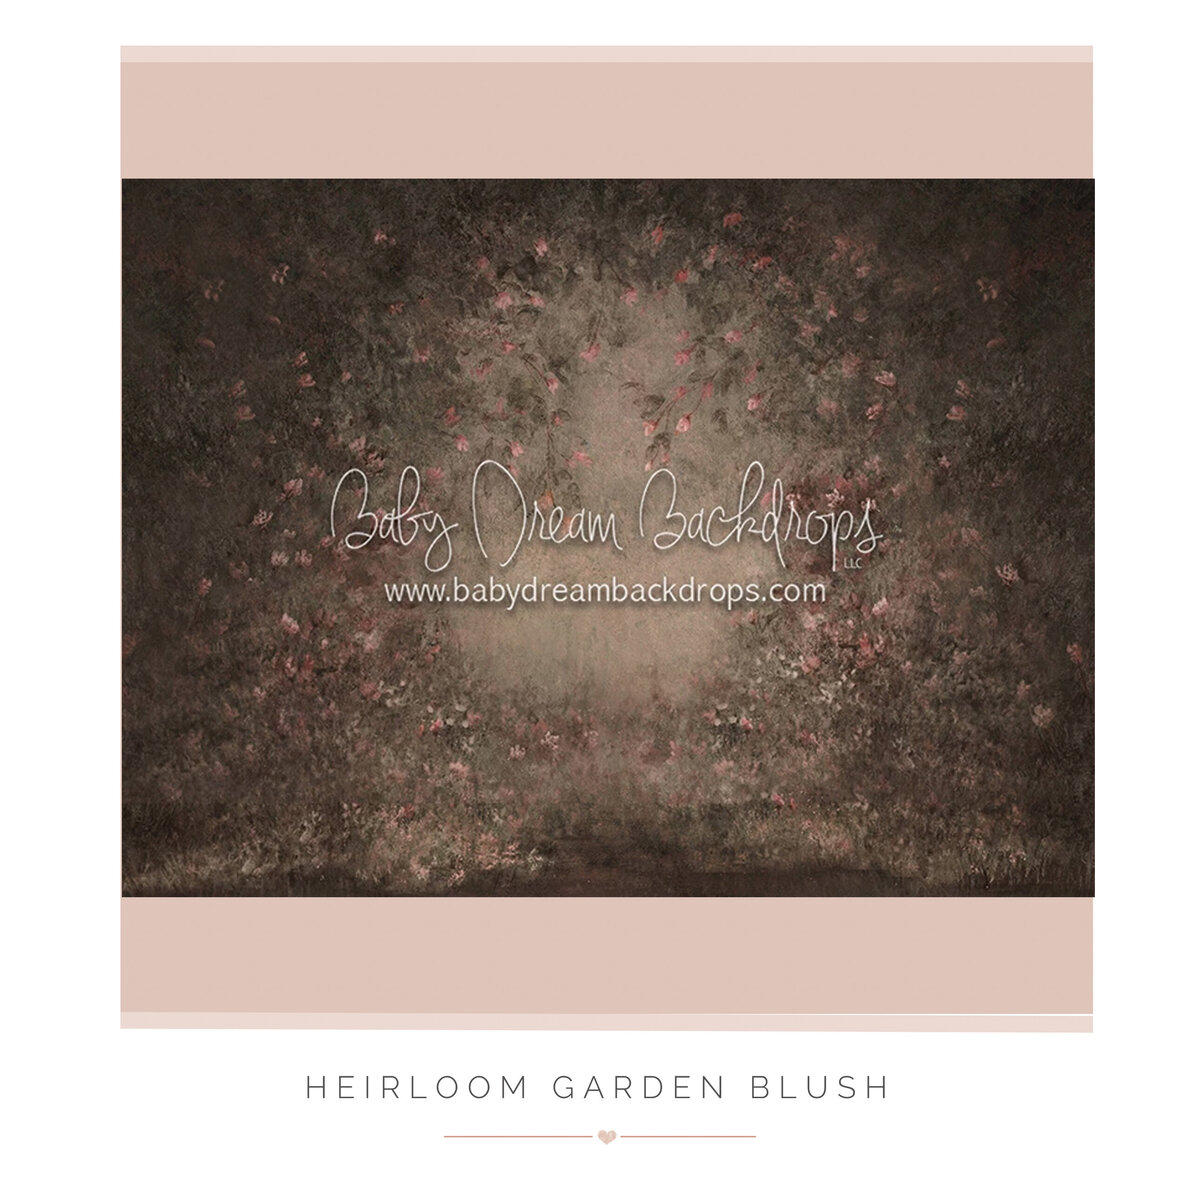 Heirloom Garden Blush